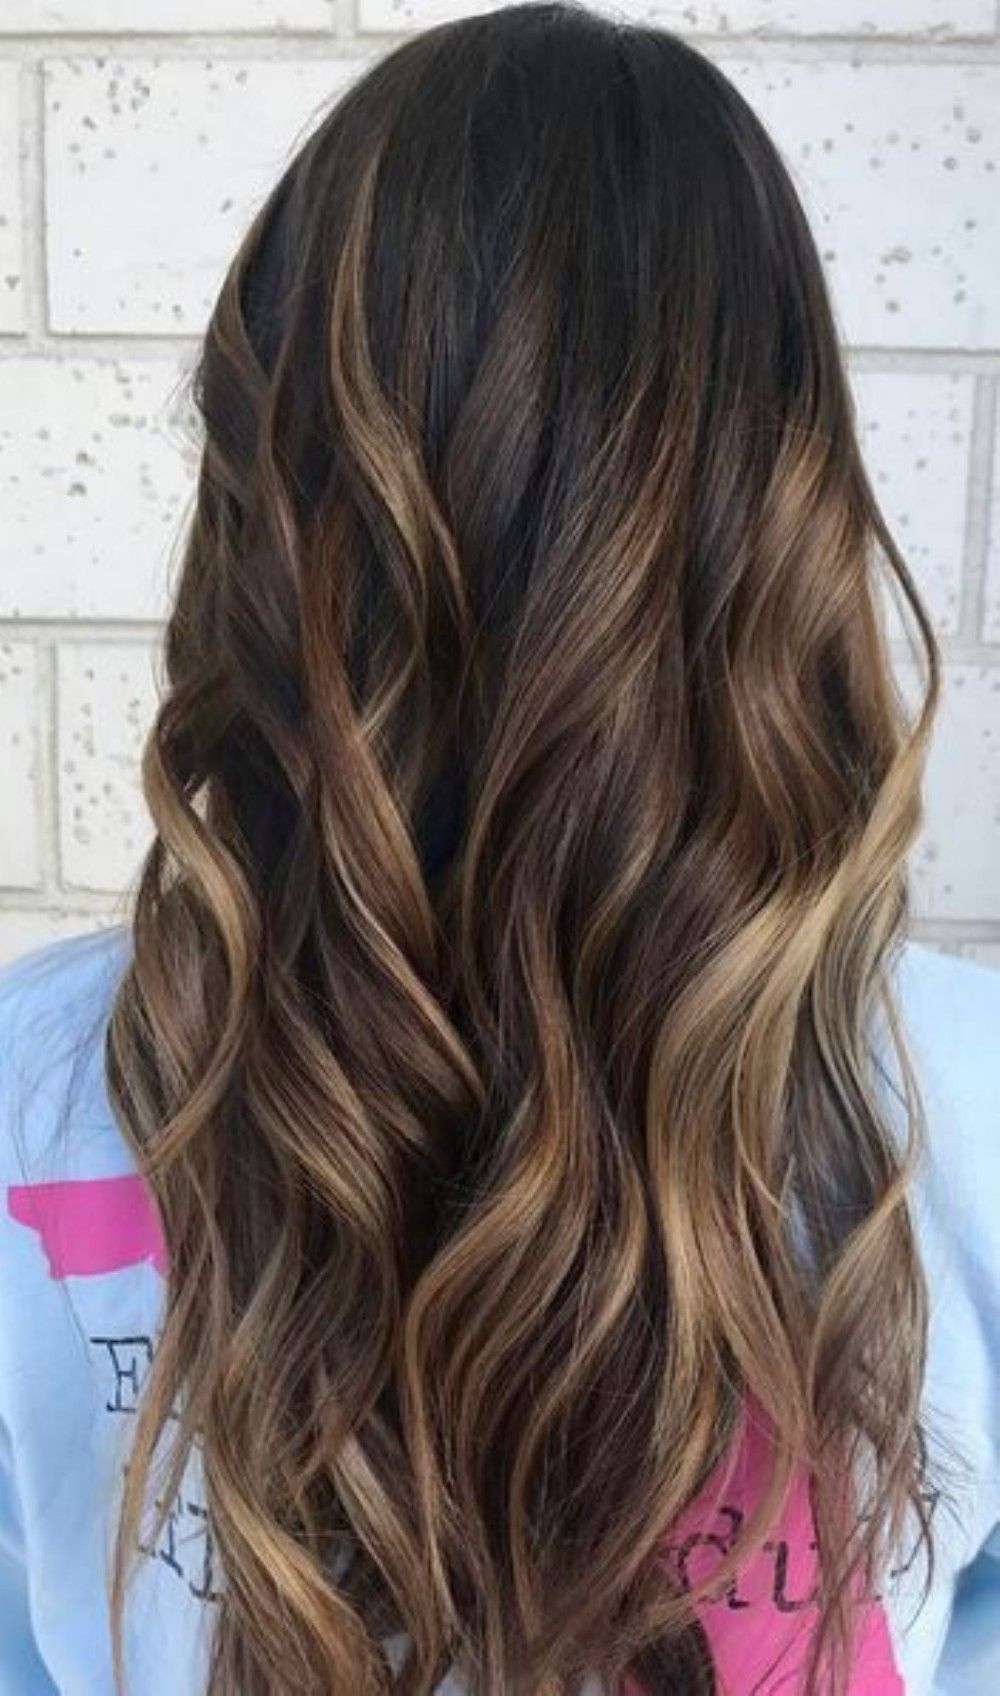 25 top brunette hair color ideas to try 2017 | hair color ideas